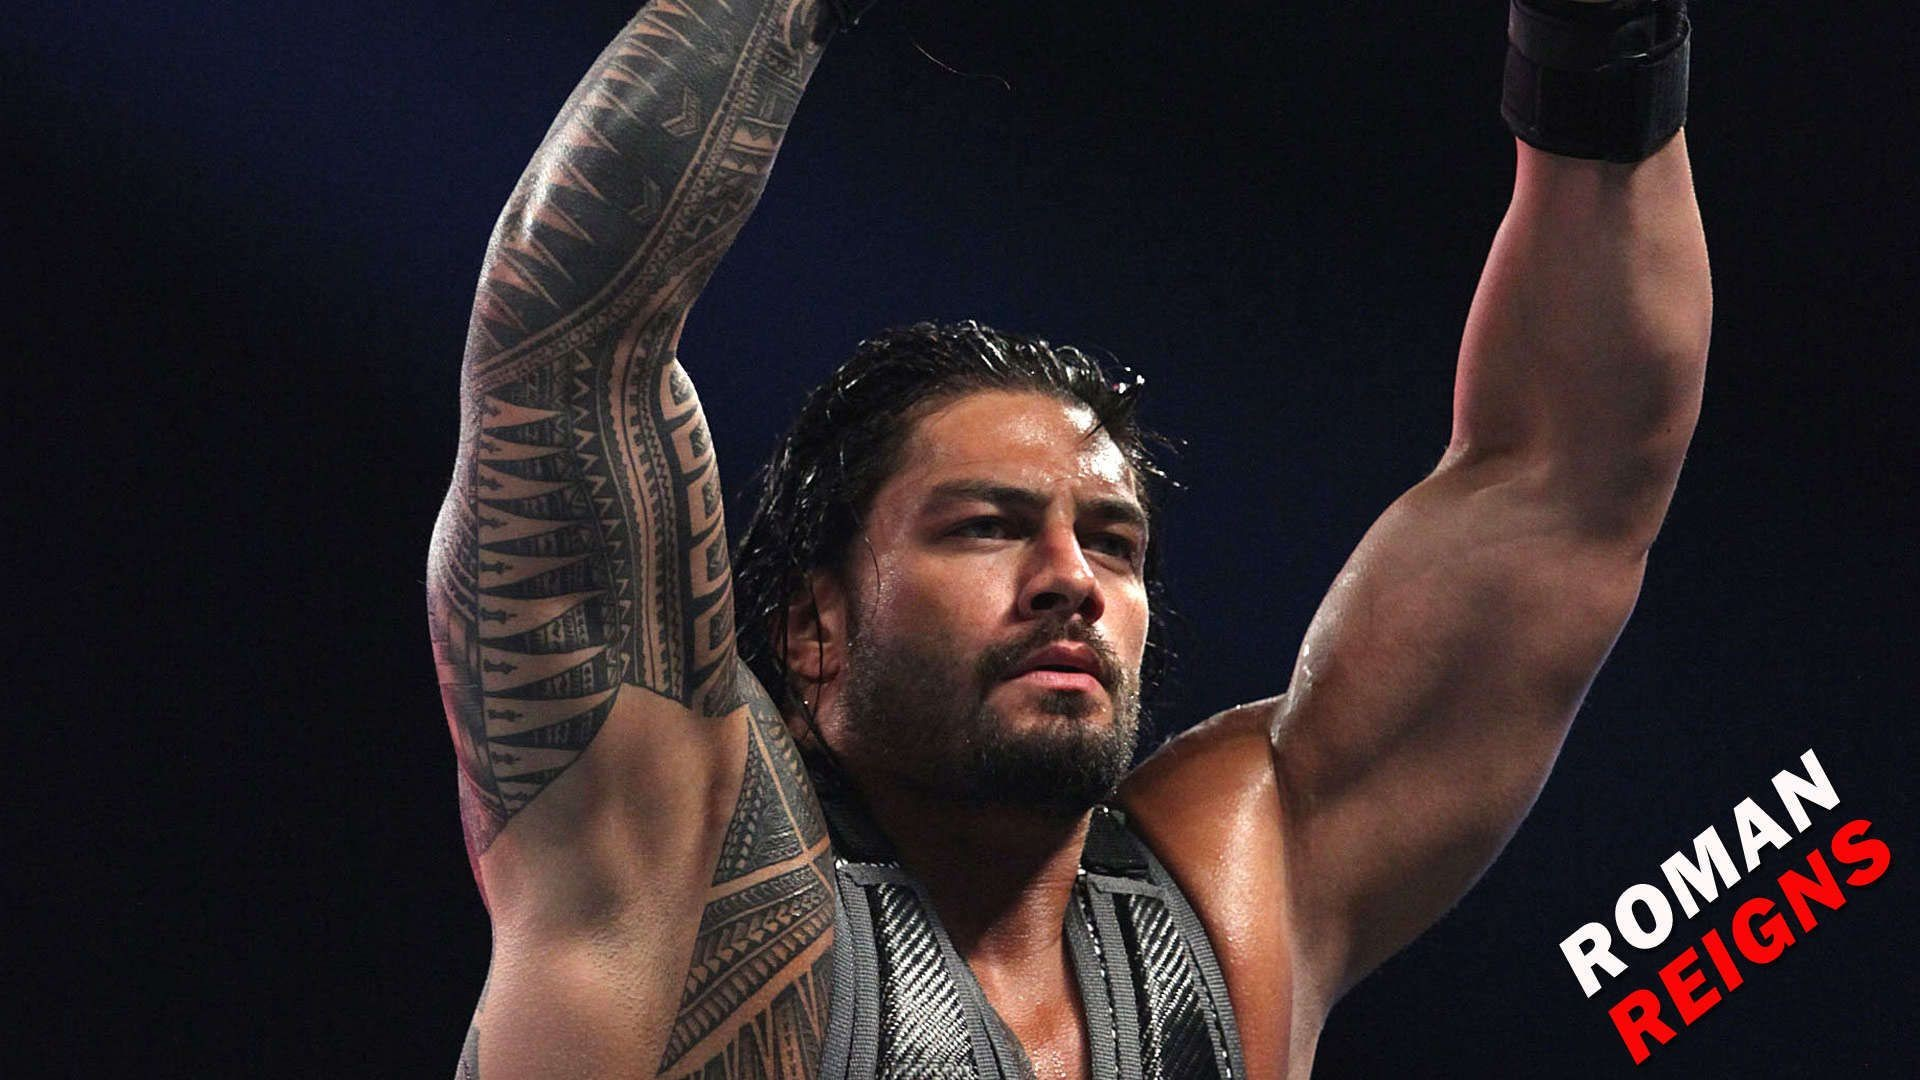 Res: 1920x1080, wwe superstar roman reigns wallpapers hd download